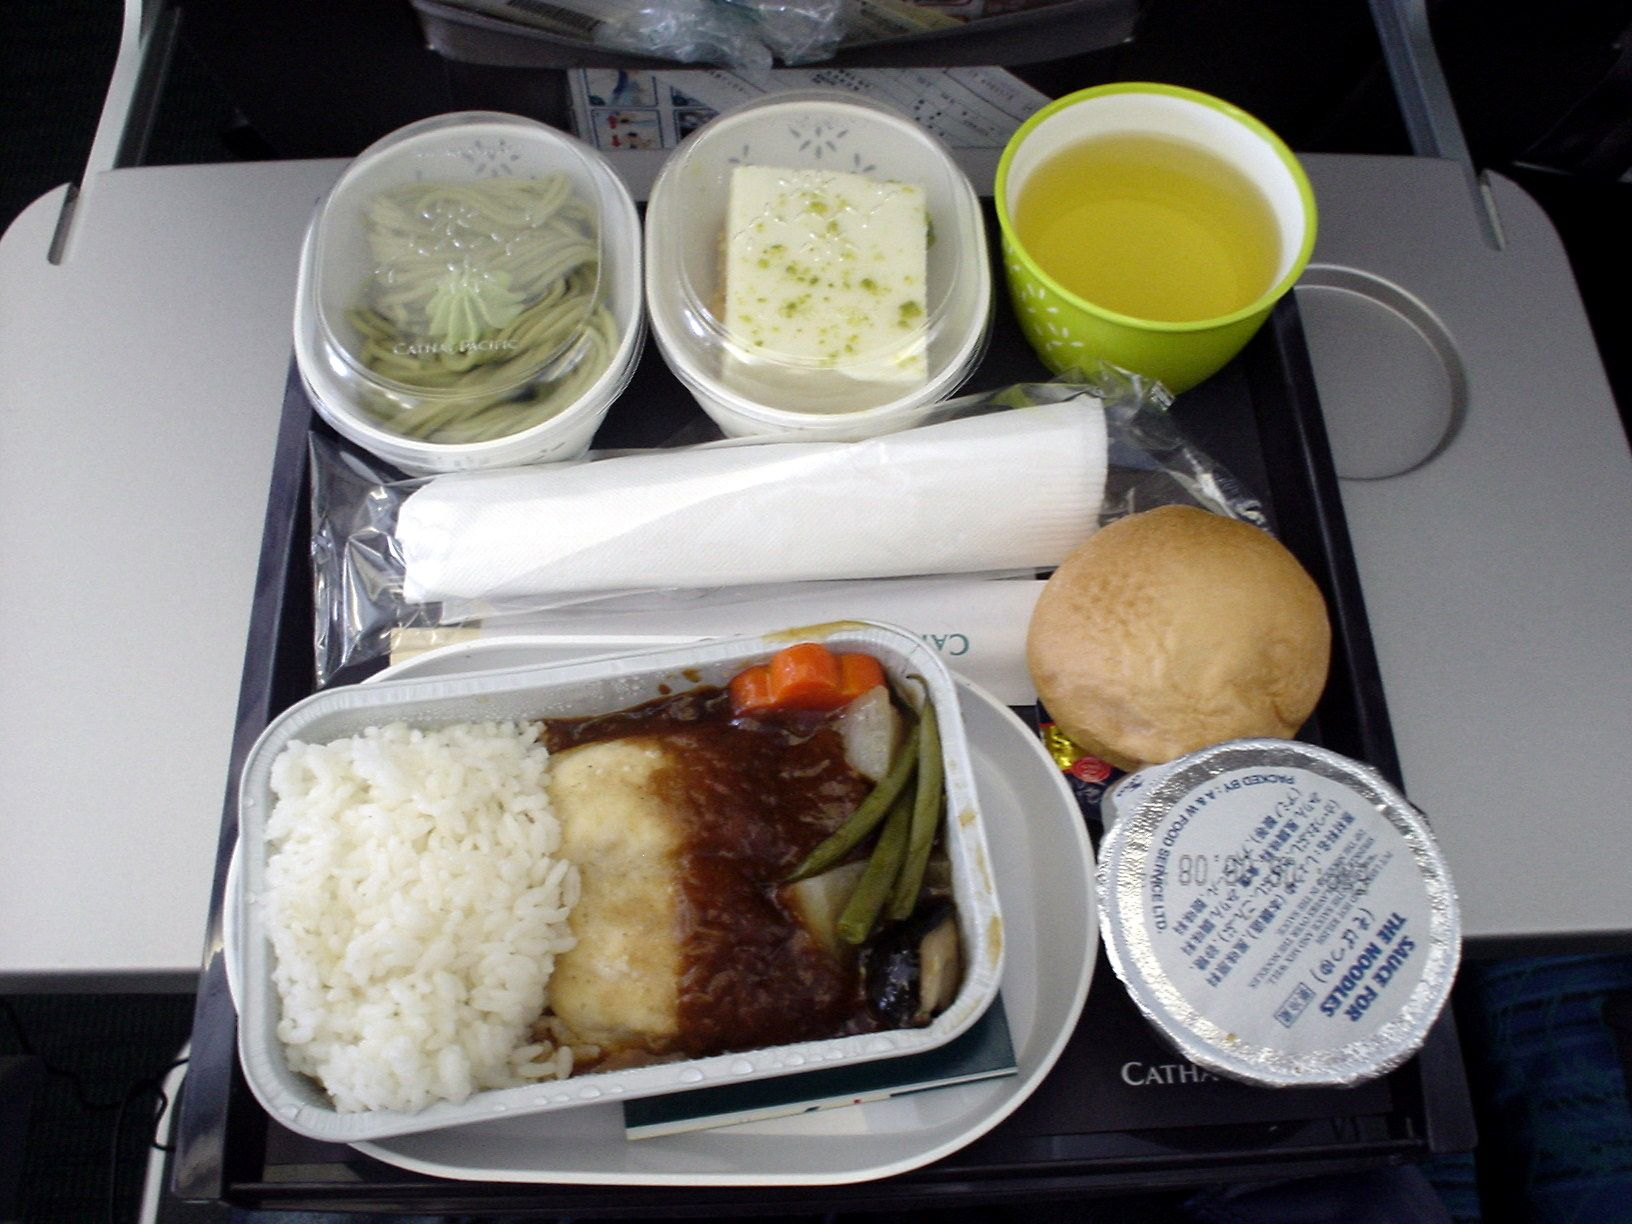 Economy class meal on aa airline food airplane food food